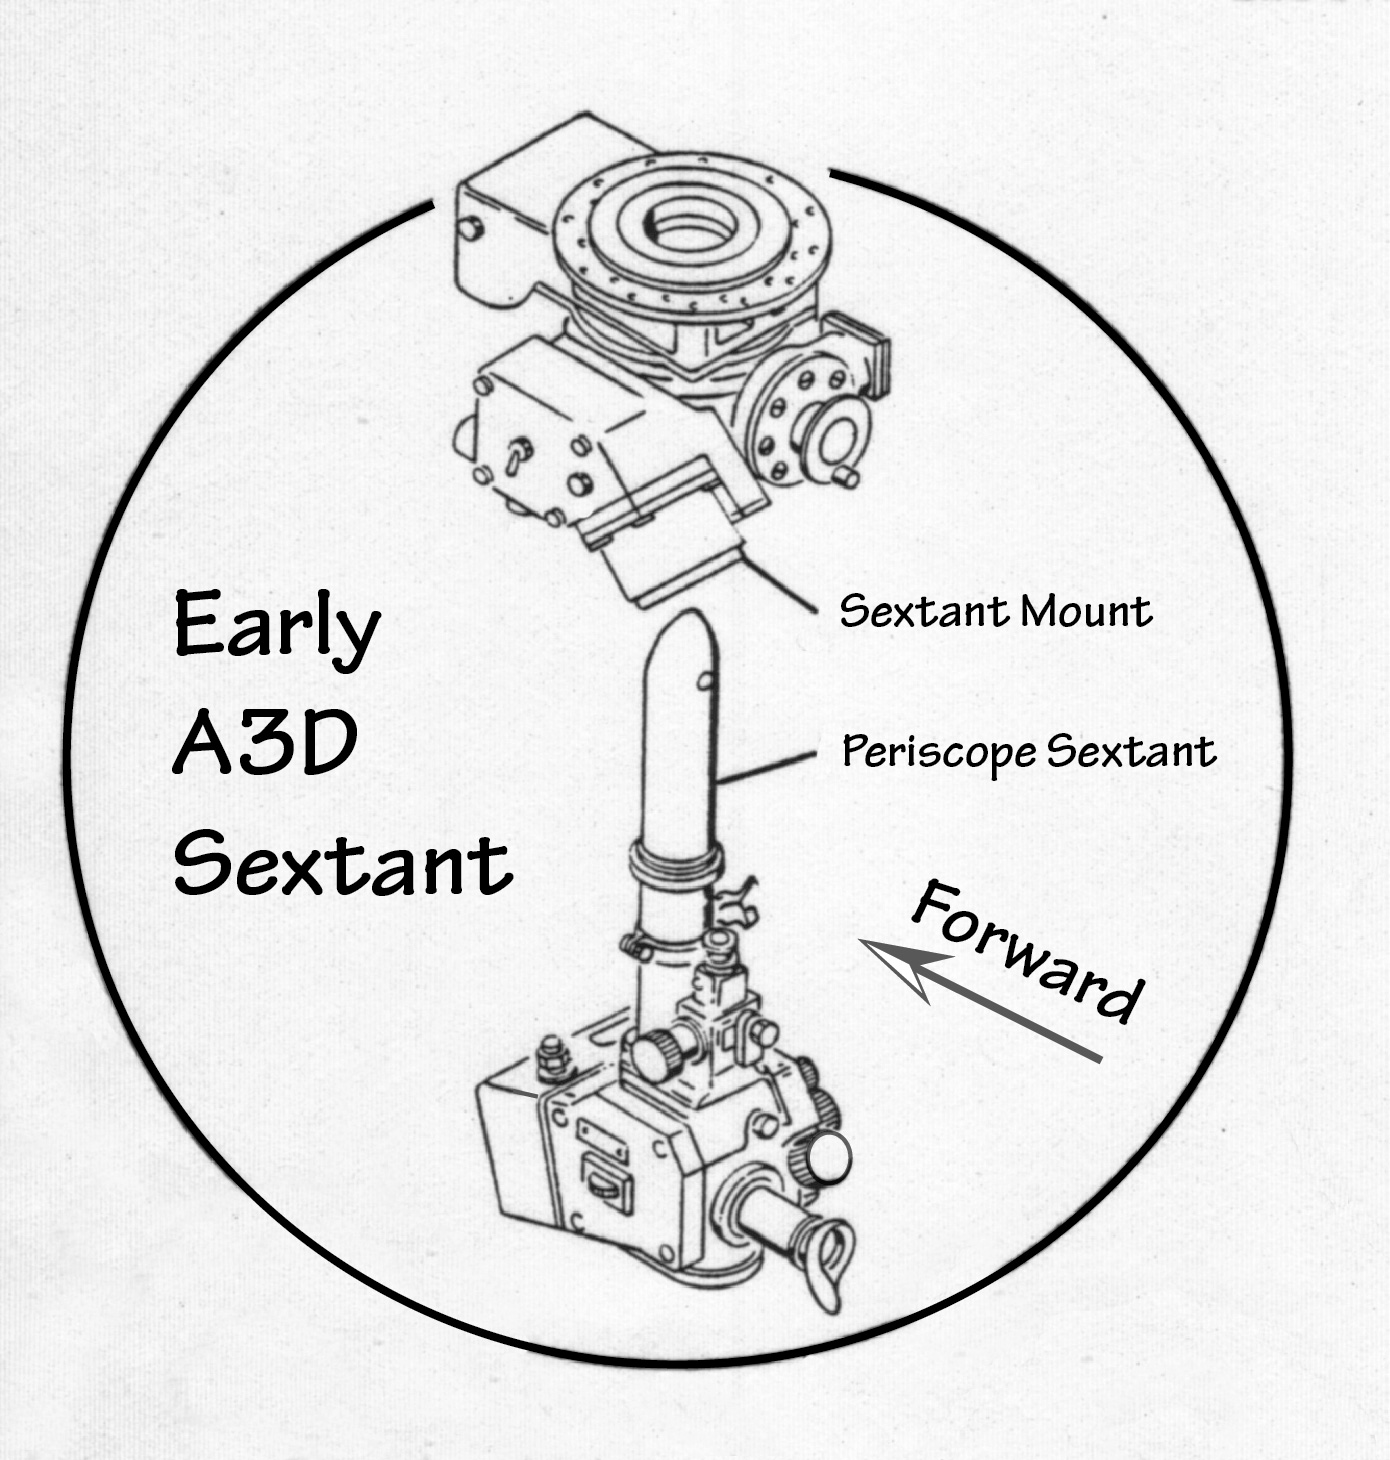 hight resolution of when sights were to be taken the periscope sextant was inserted into the mount the tip stuck out about an inch above the skin on the airplane